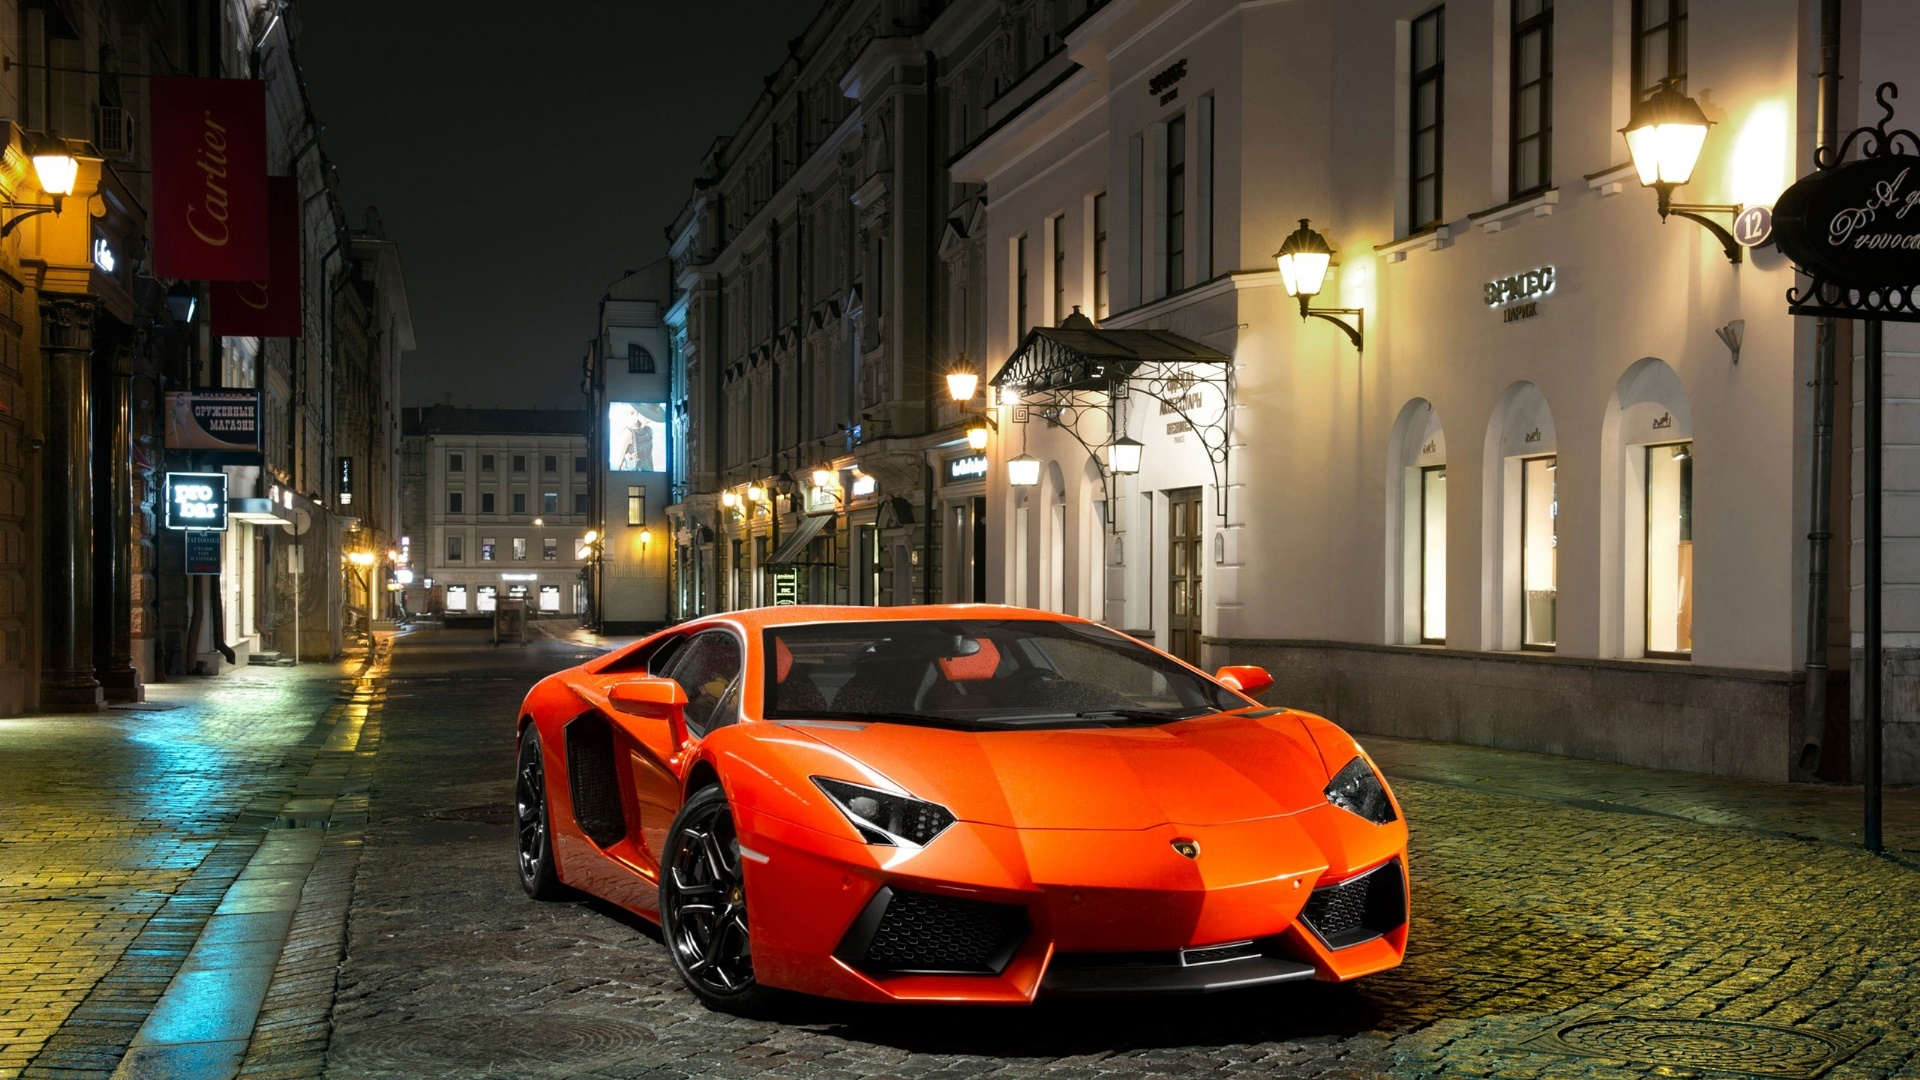 Lamborghini Aventador Hd Wallpaper Backiee Free Ultra Hd